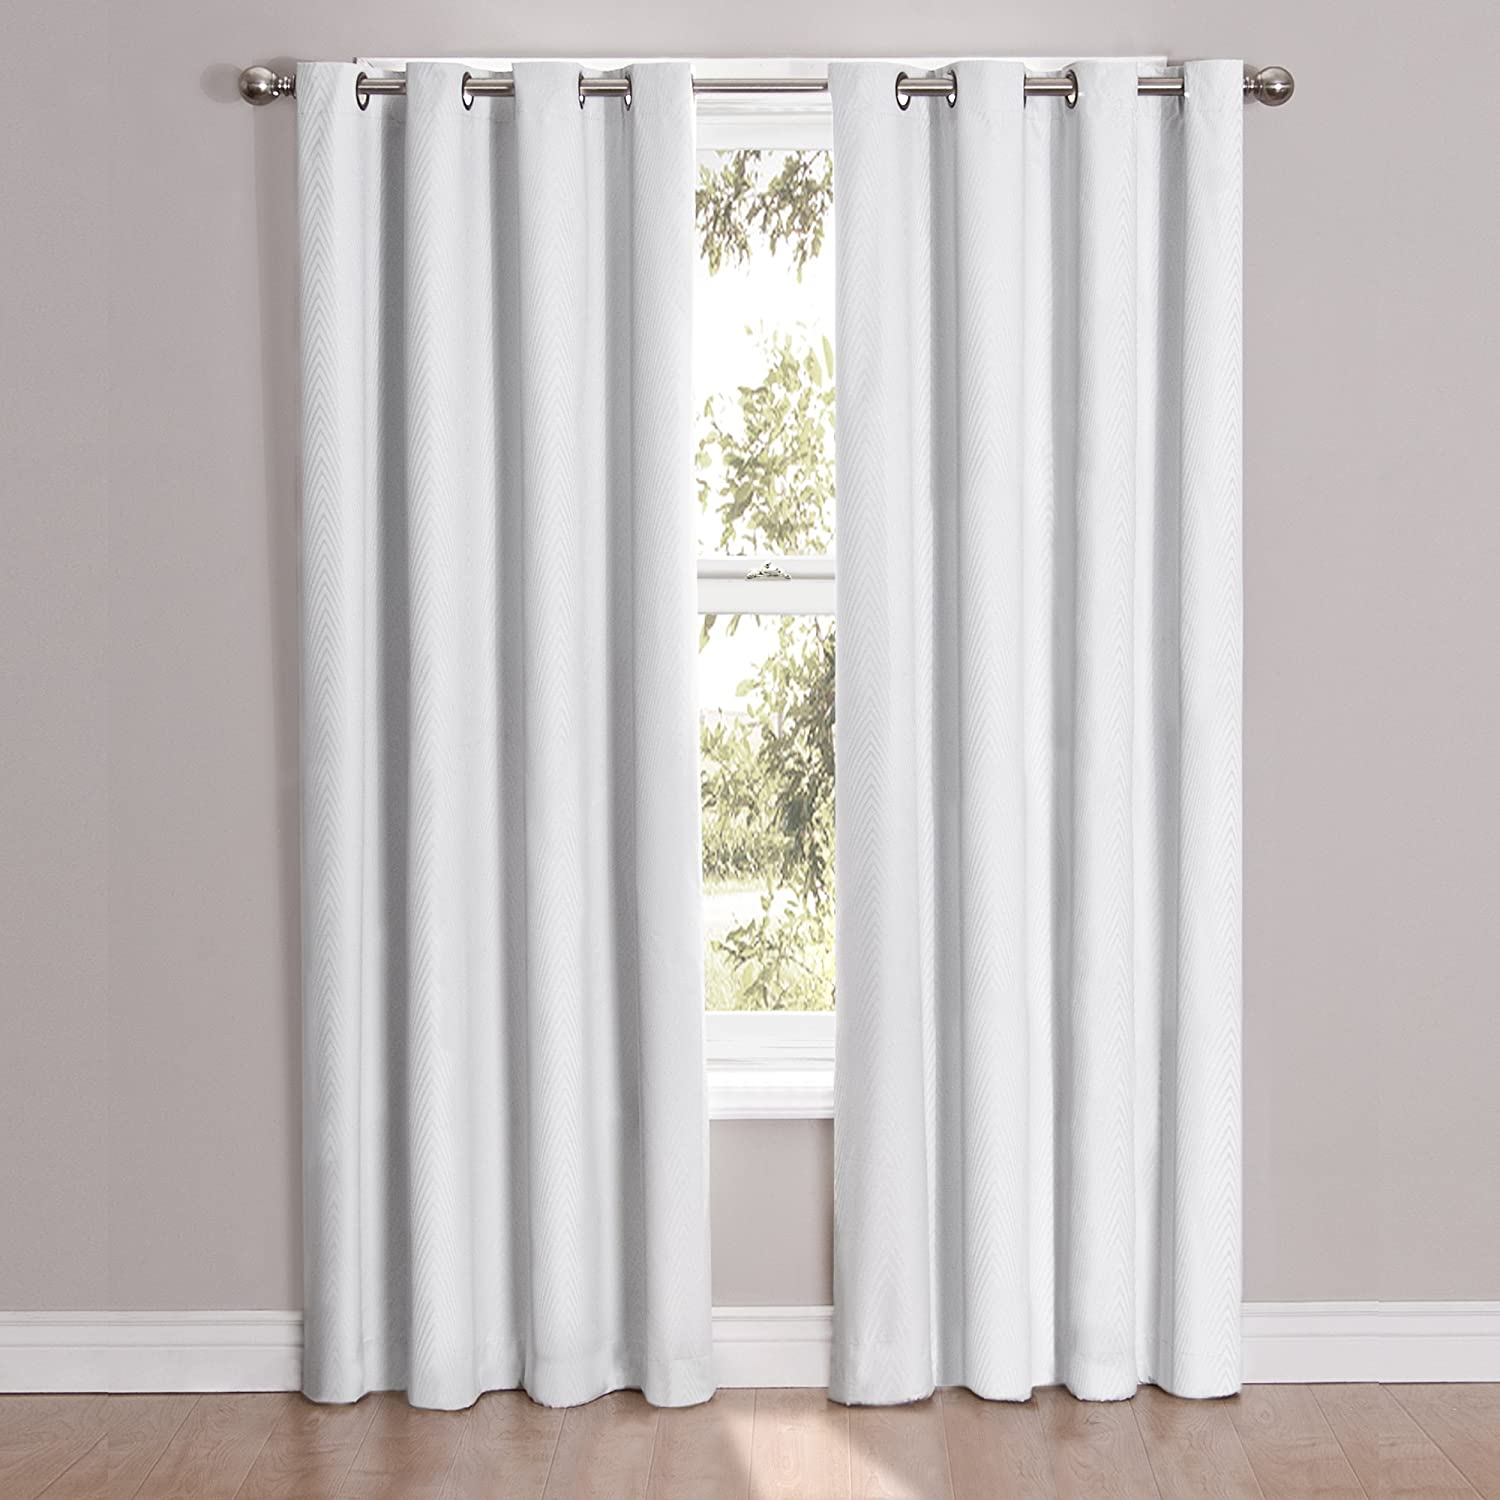 curtains com fashion calix ip window curtain mainstays set walmart of